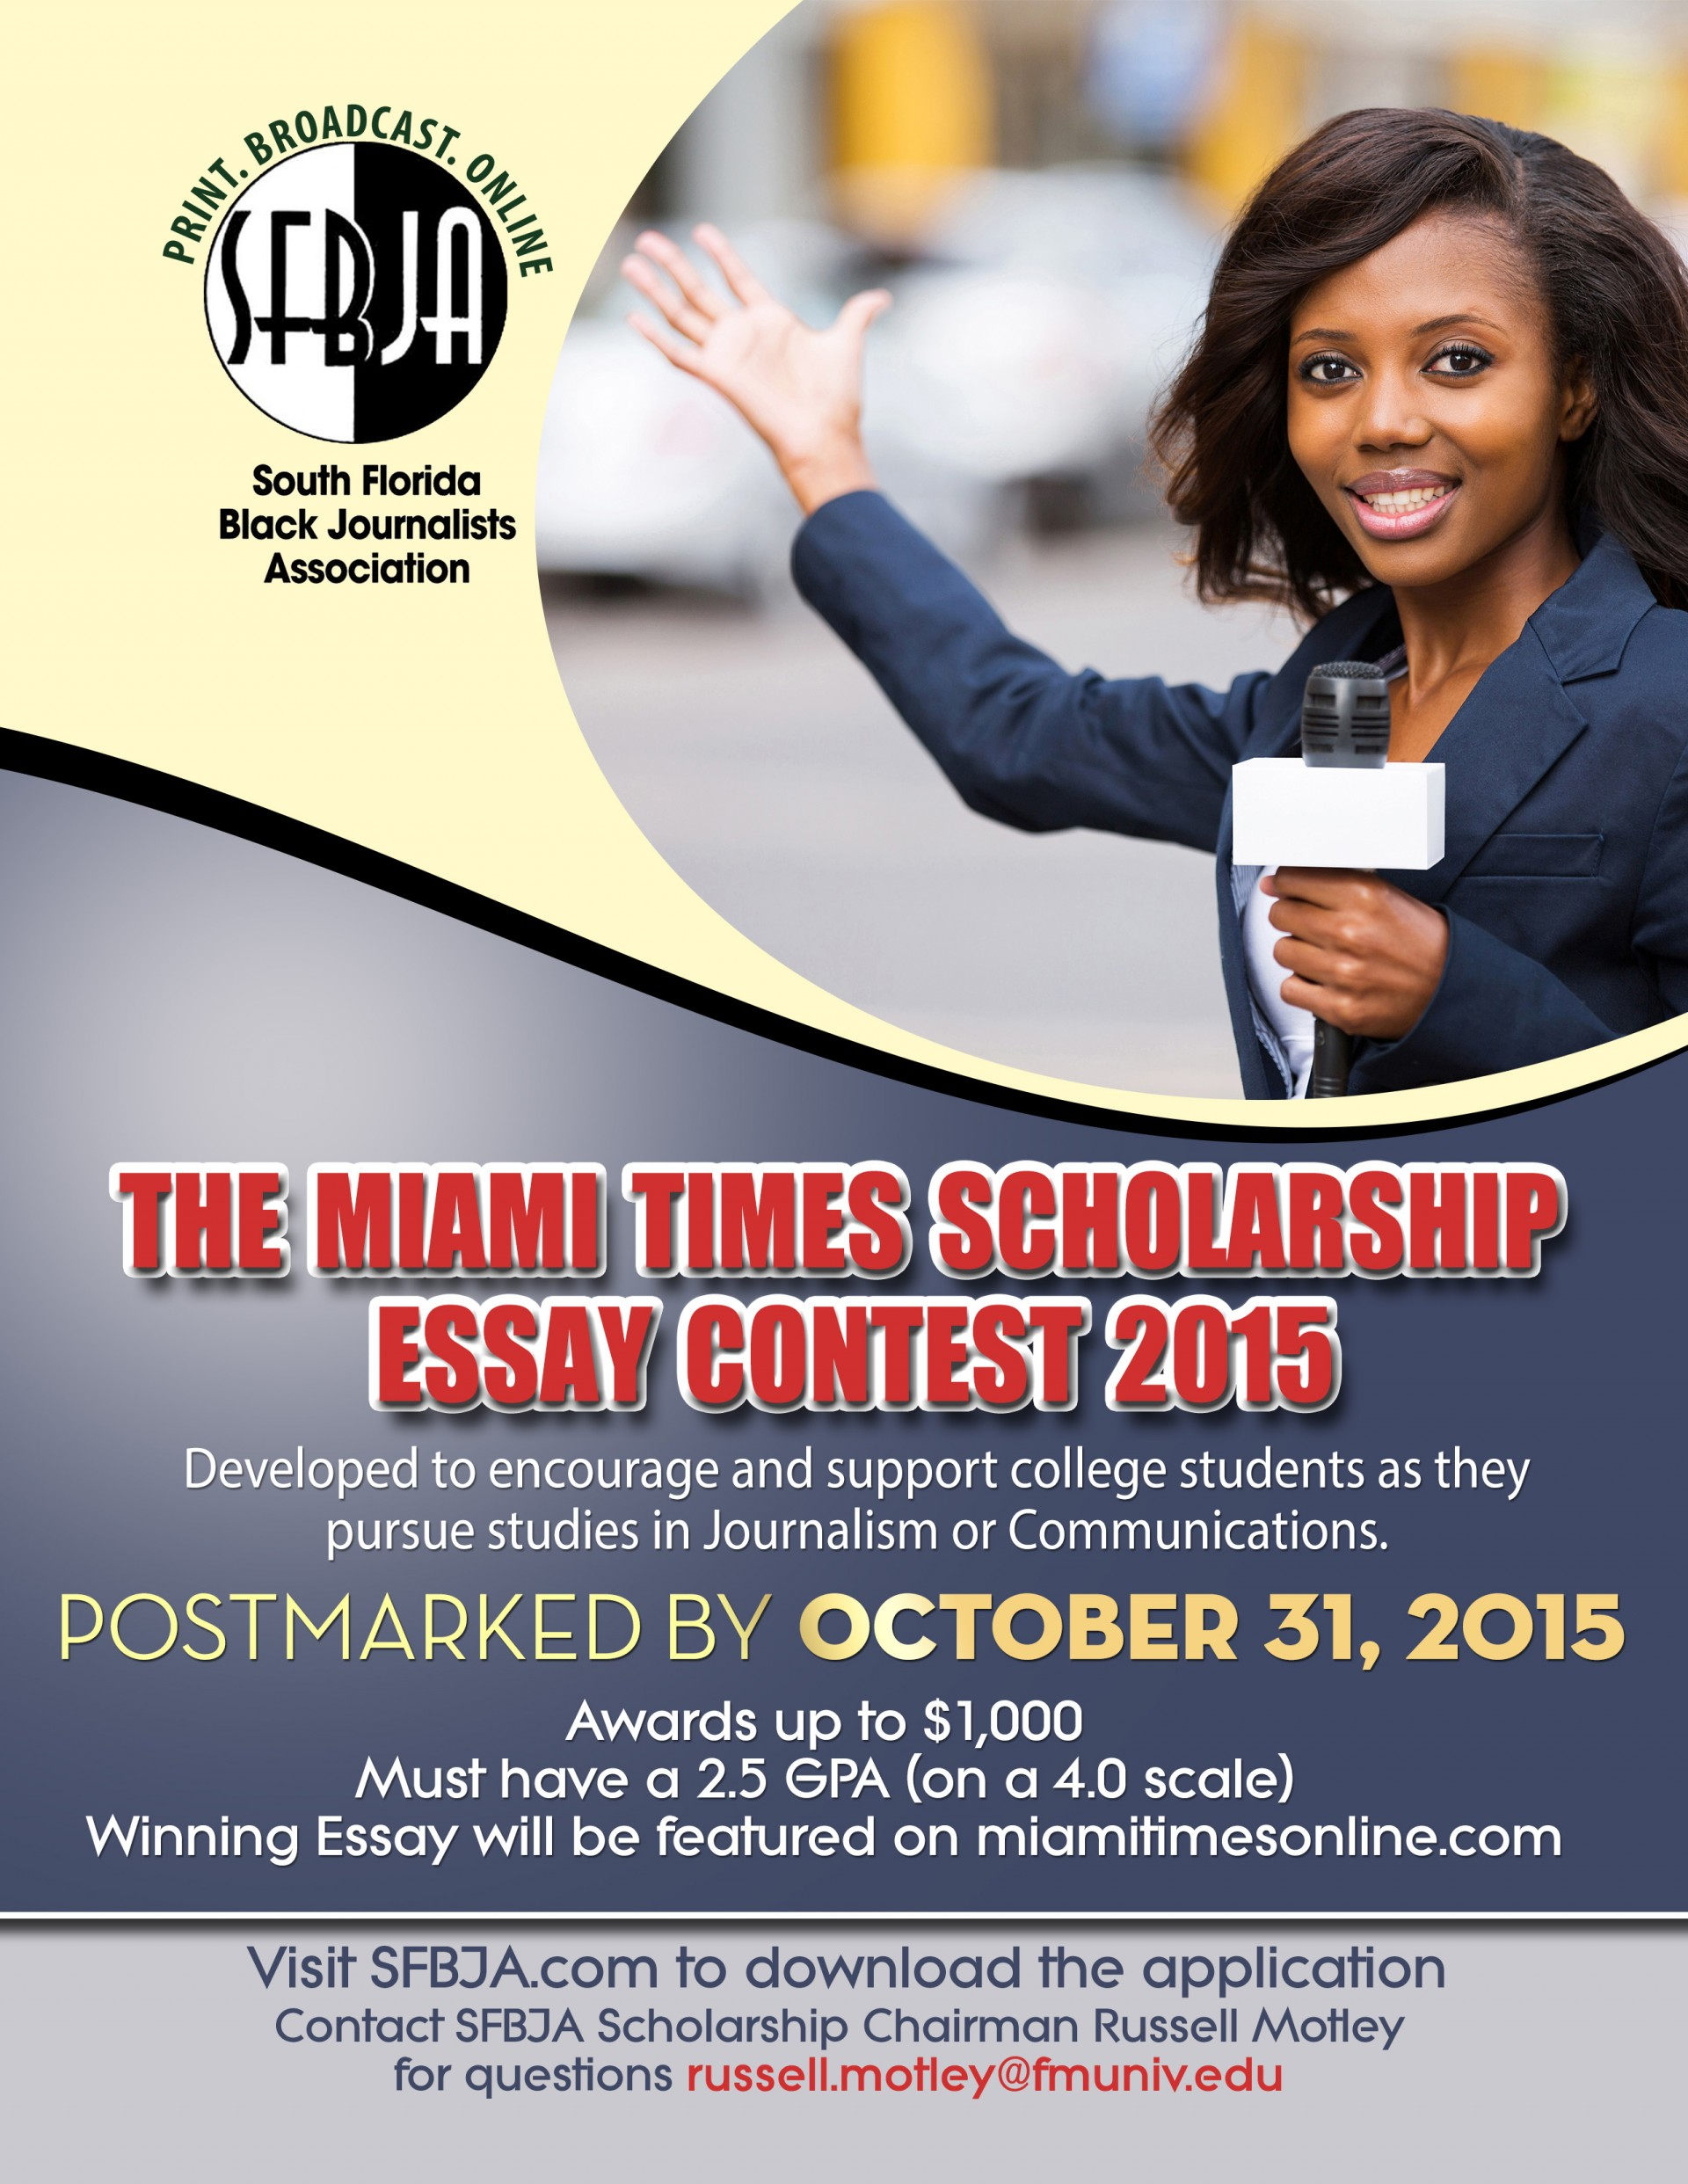 007 Essay Example Scholarship Contest Miami Times Flyer October31 Astounding Contests For High School Students 2019 Middle 1920